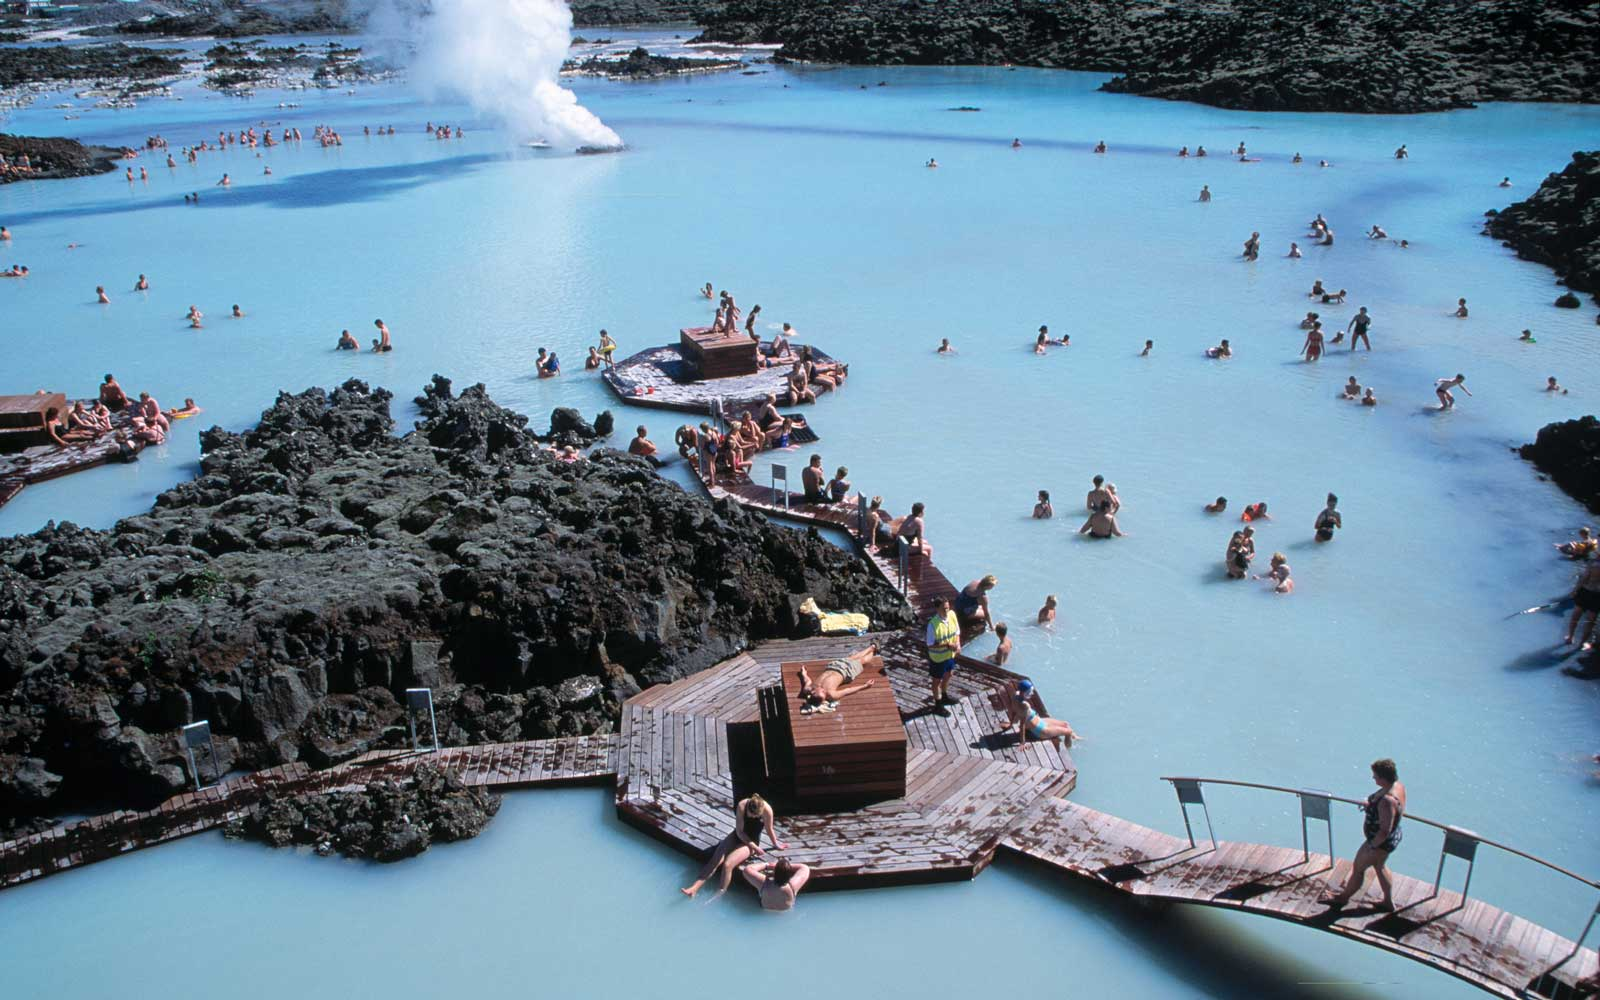 American Tourists Now Outnumber Iceland Residents